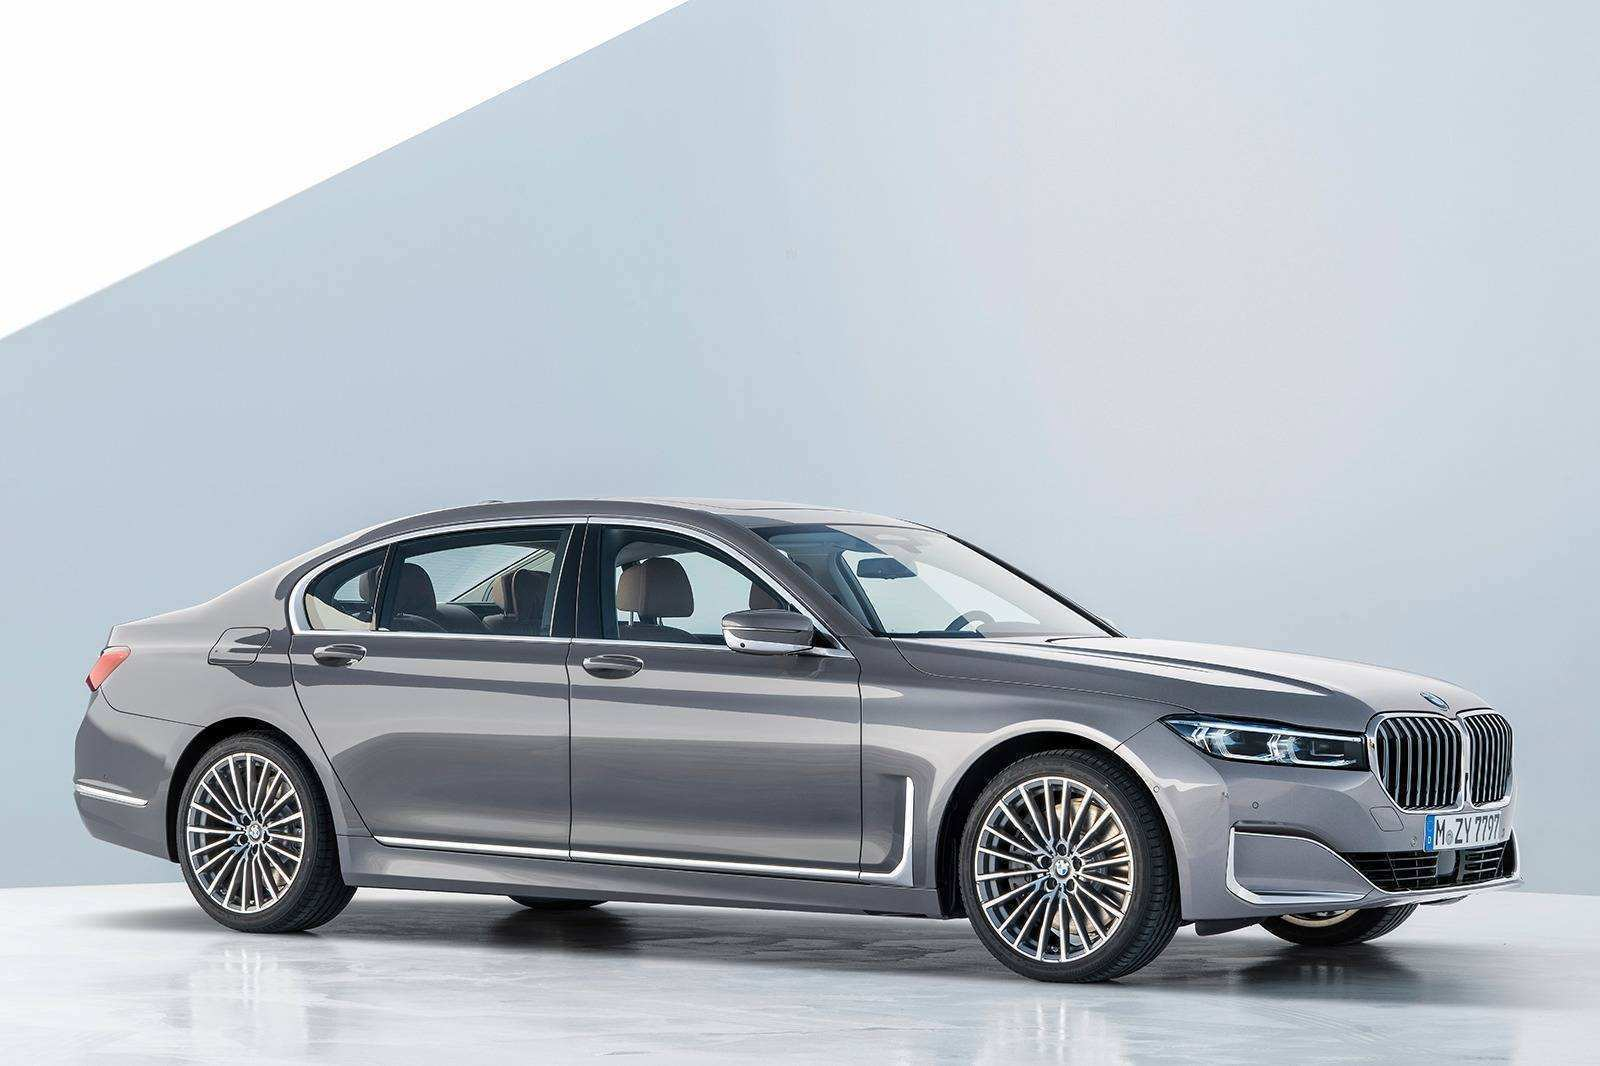 76 Best 2020 BMW 7 Series Review And Release Date